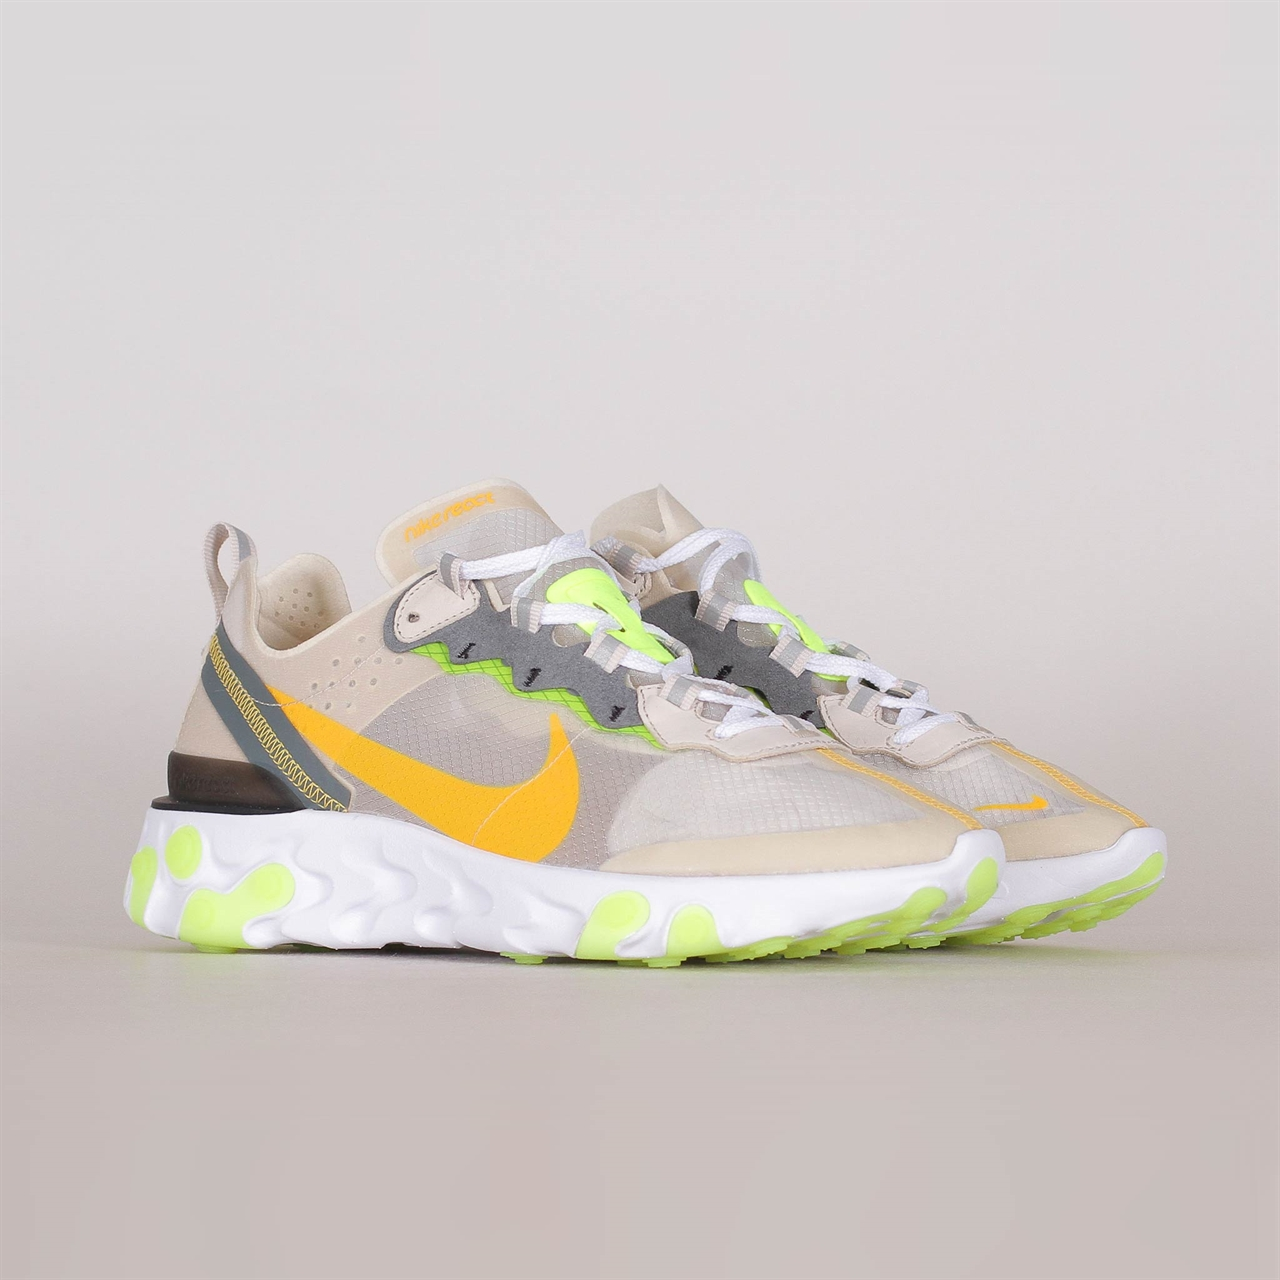 Shelta - Nike React Element 87 (AQ1090-101) ac38d76b6e